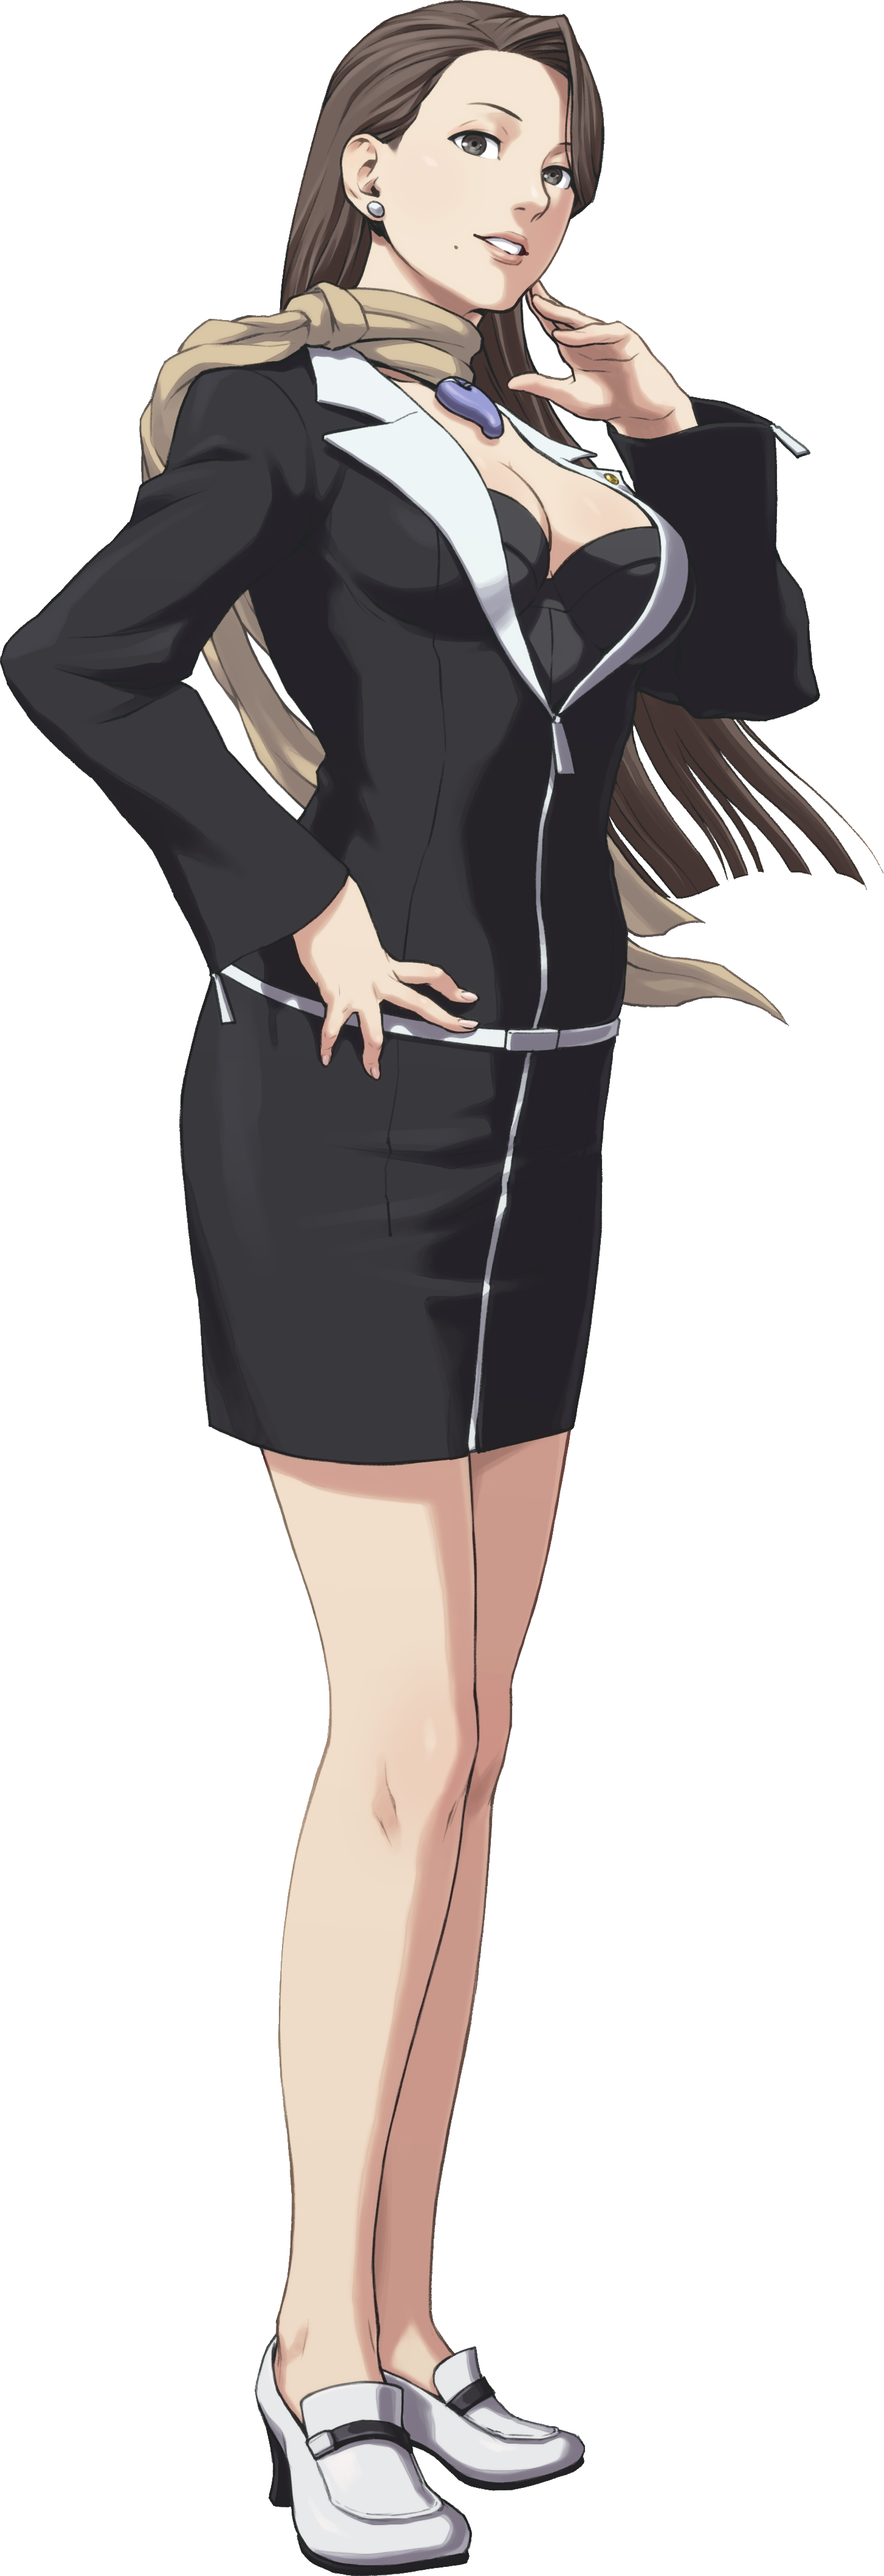 Phoenix wright ace attorney mia fey